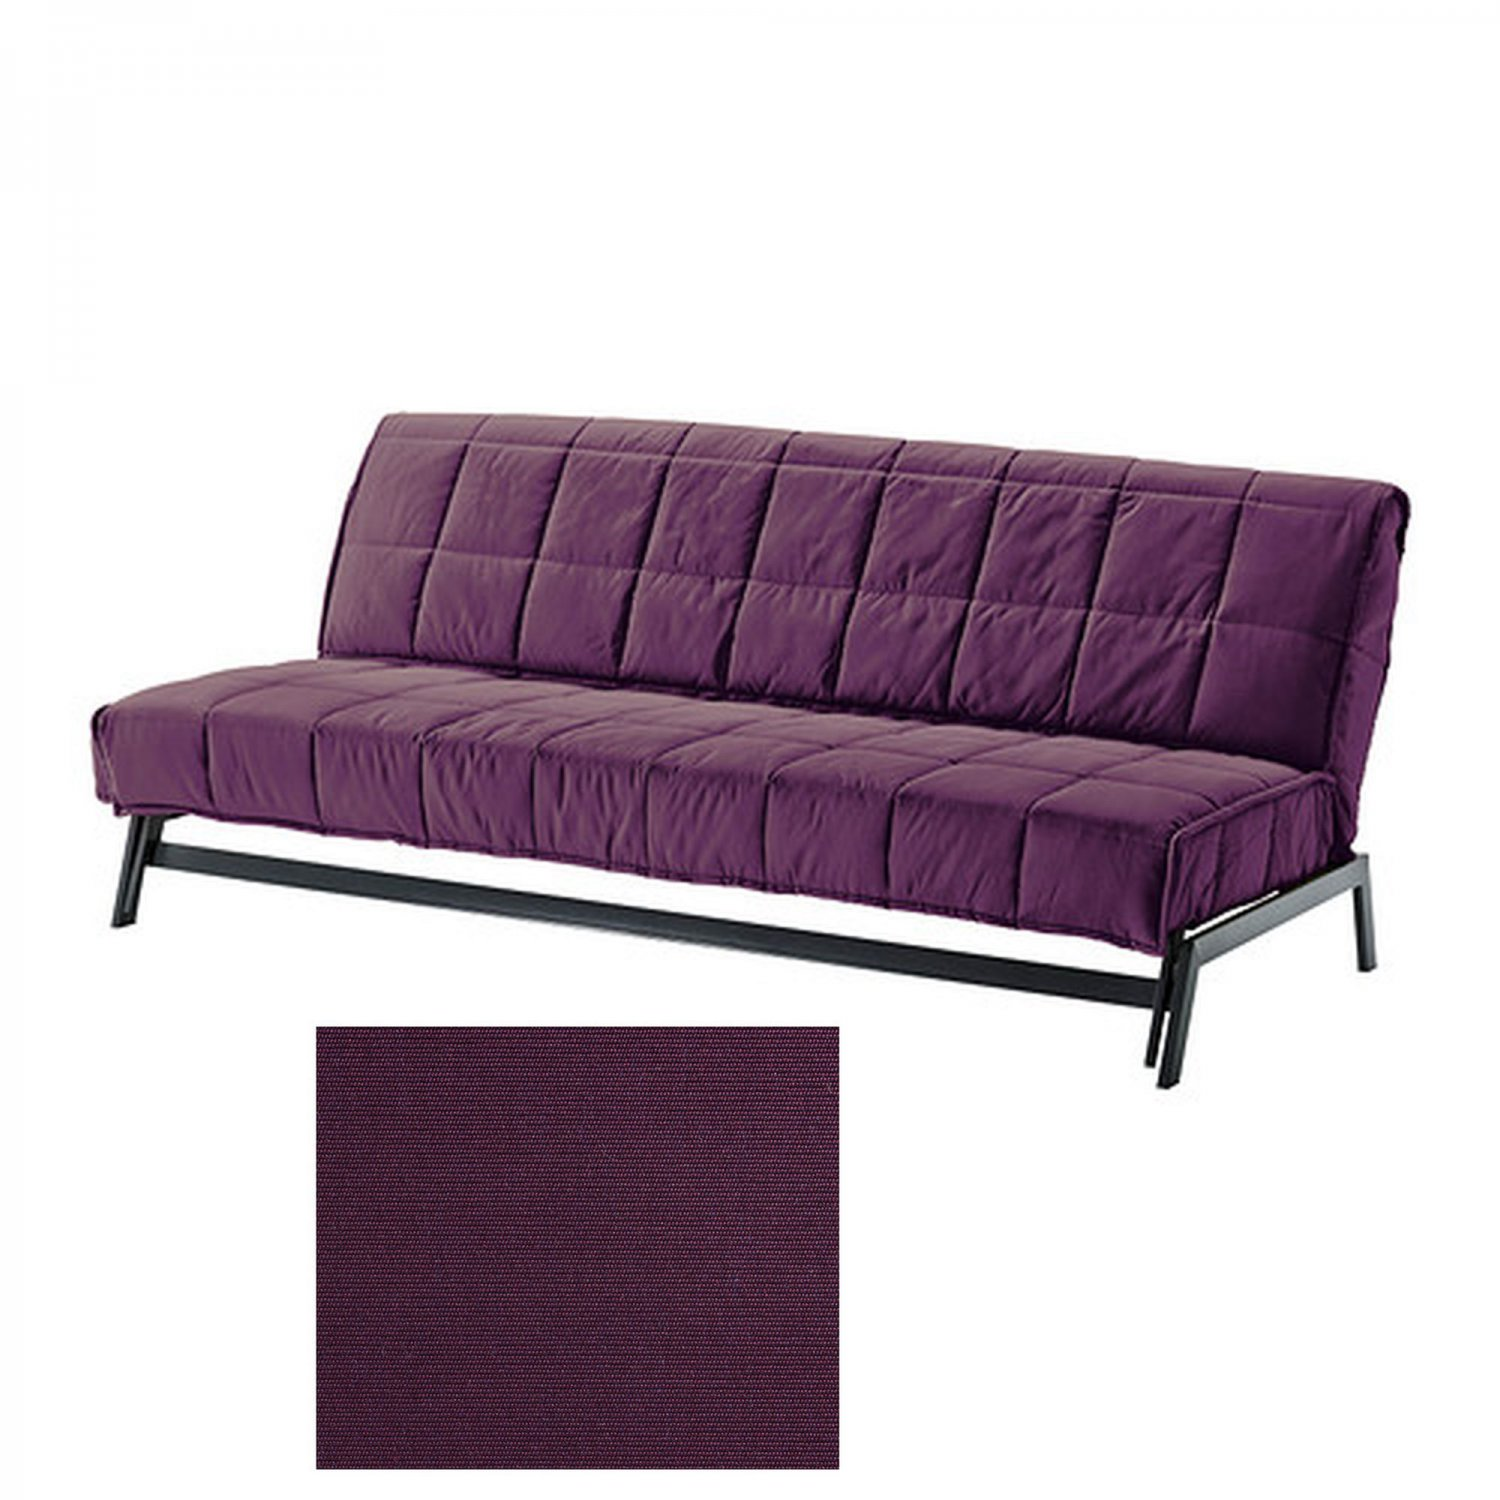 Ikea karlaby sofa bed sofabed slipcover cover sivik dark lilac purple Sleeper sofa covers